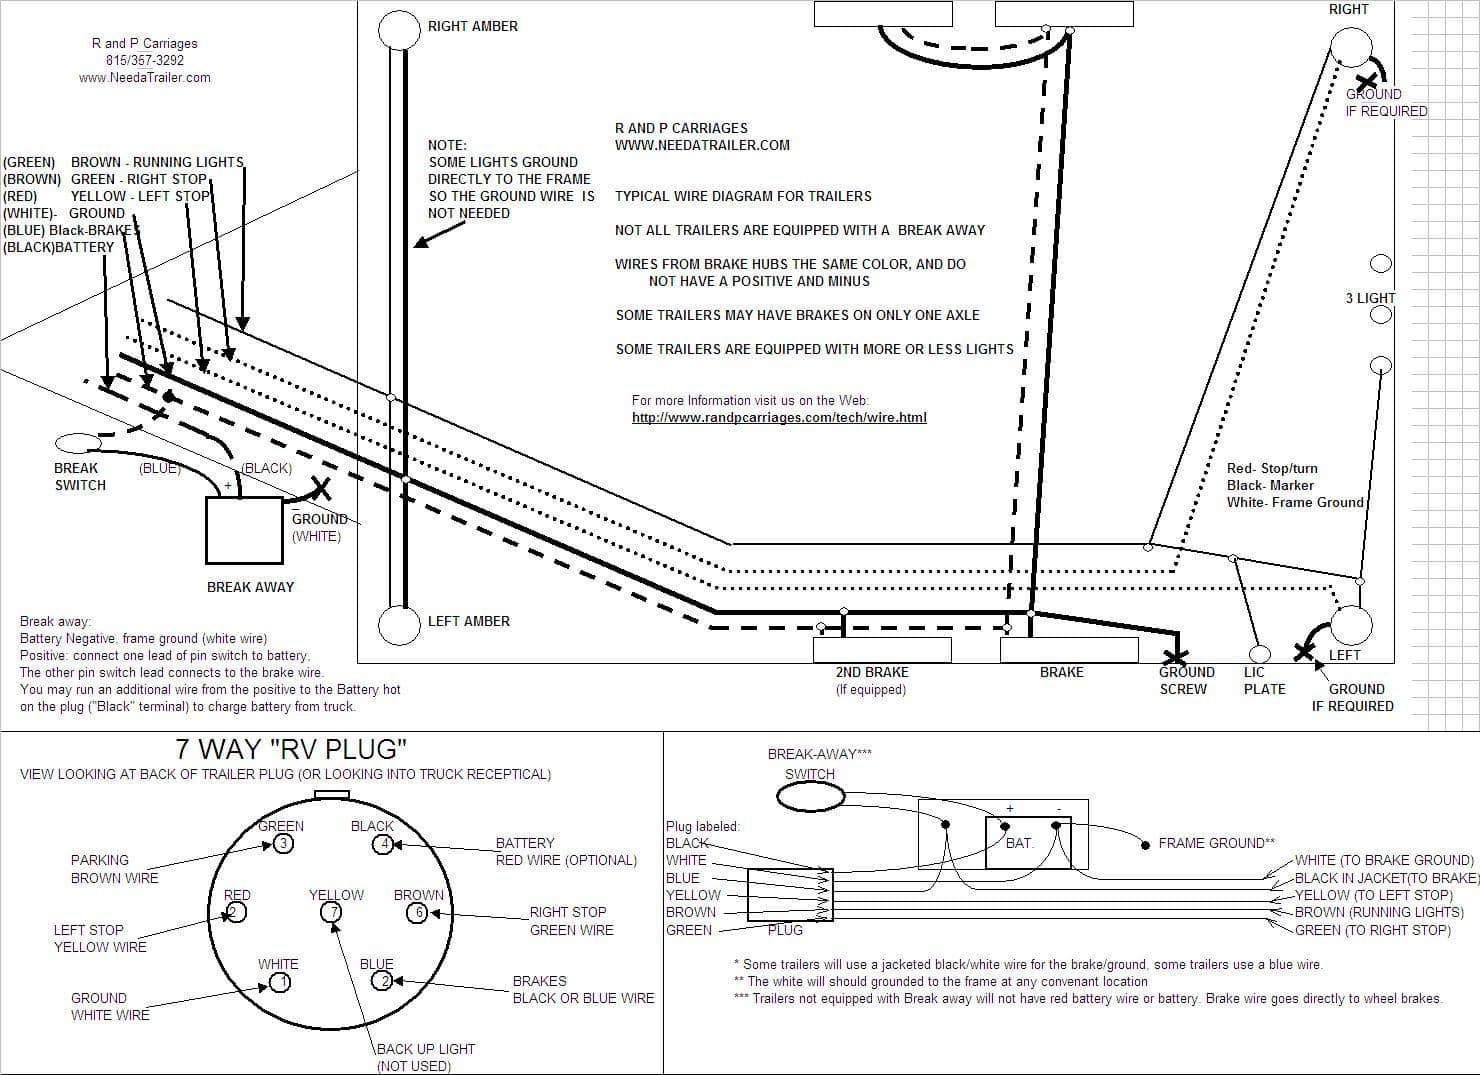 7 Way Plug Information | R And P Carriages | Cargo, Utility, Dump - 7Way Trailer Wiring Diagram